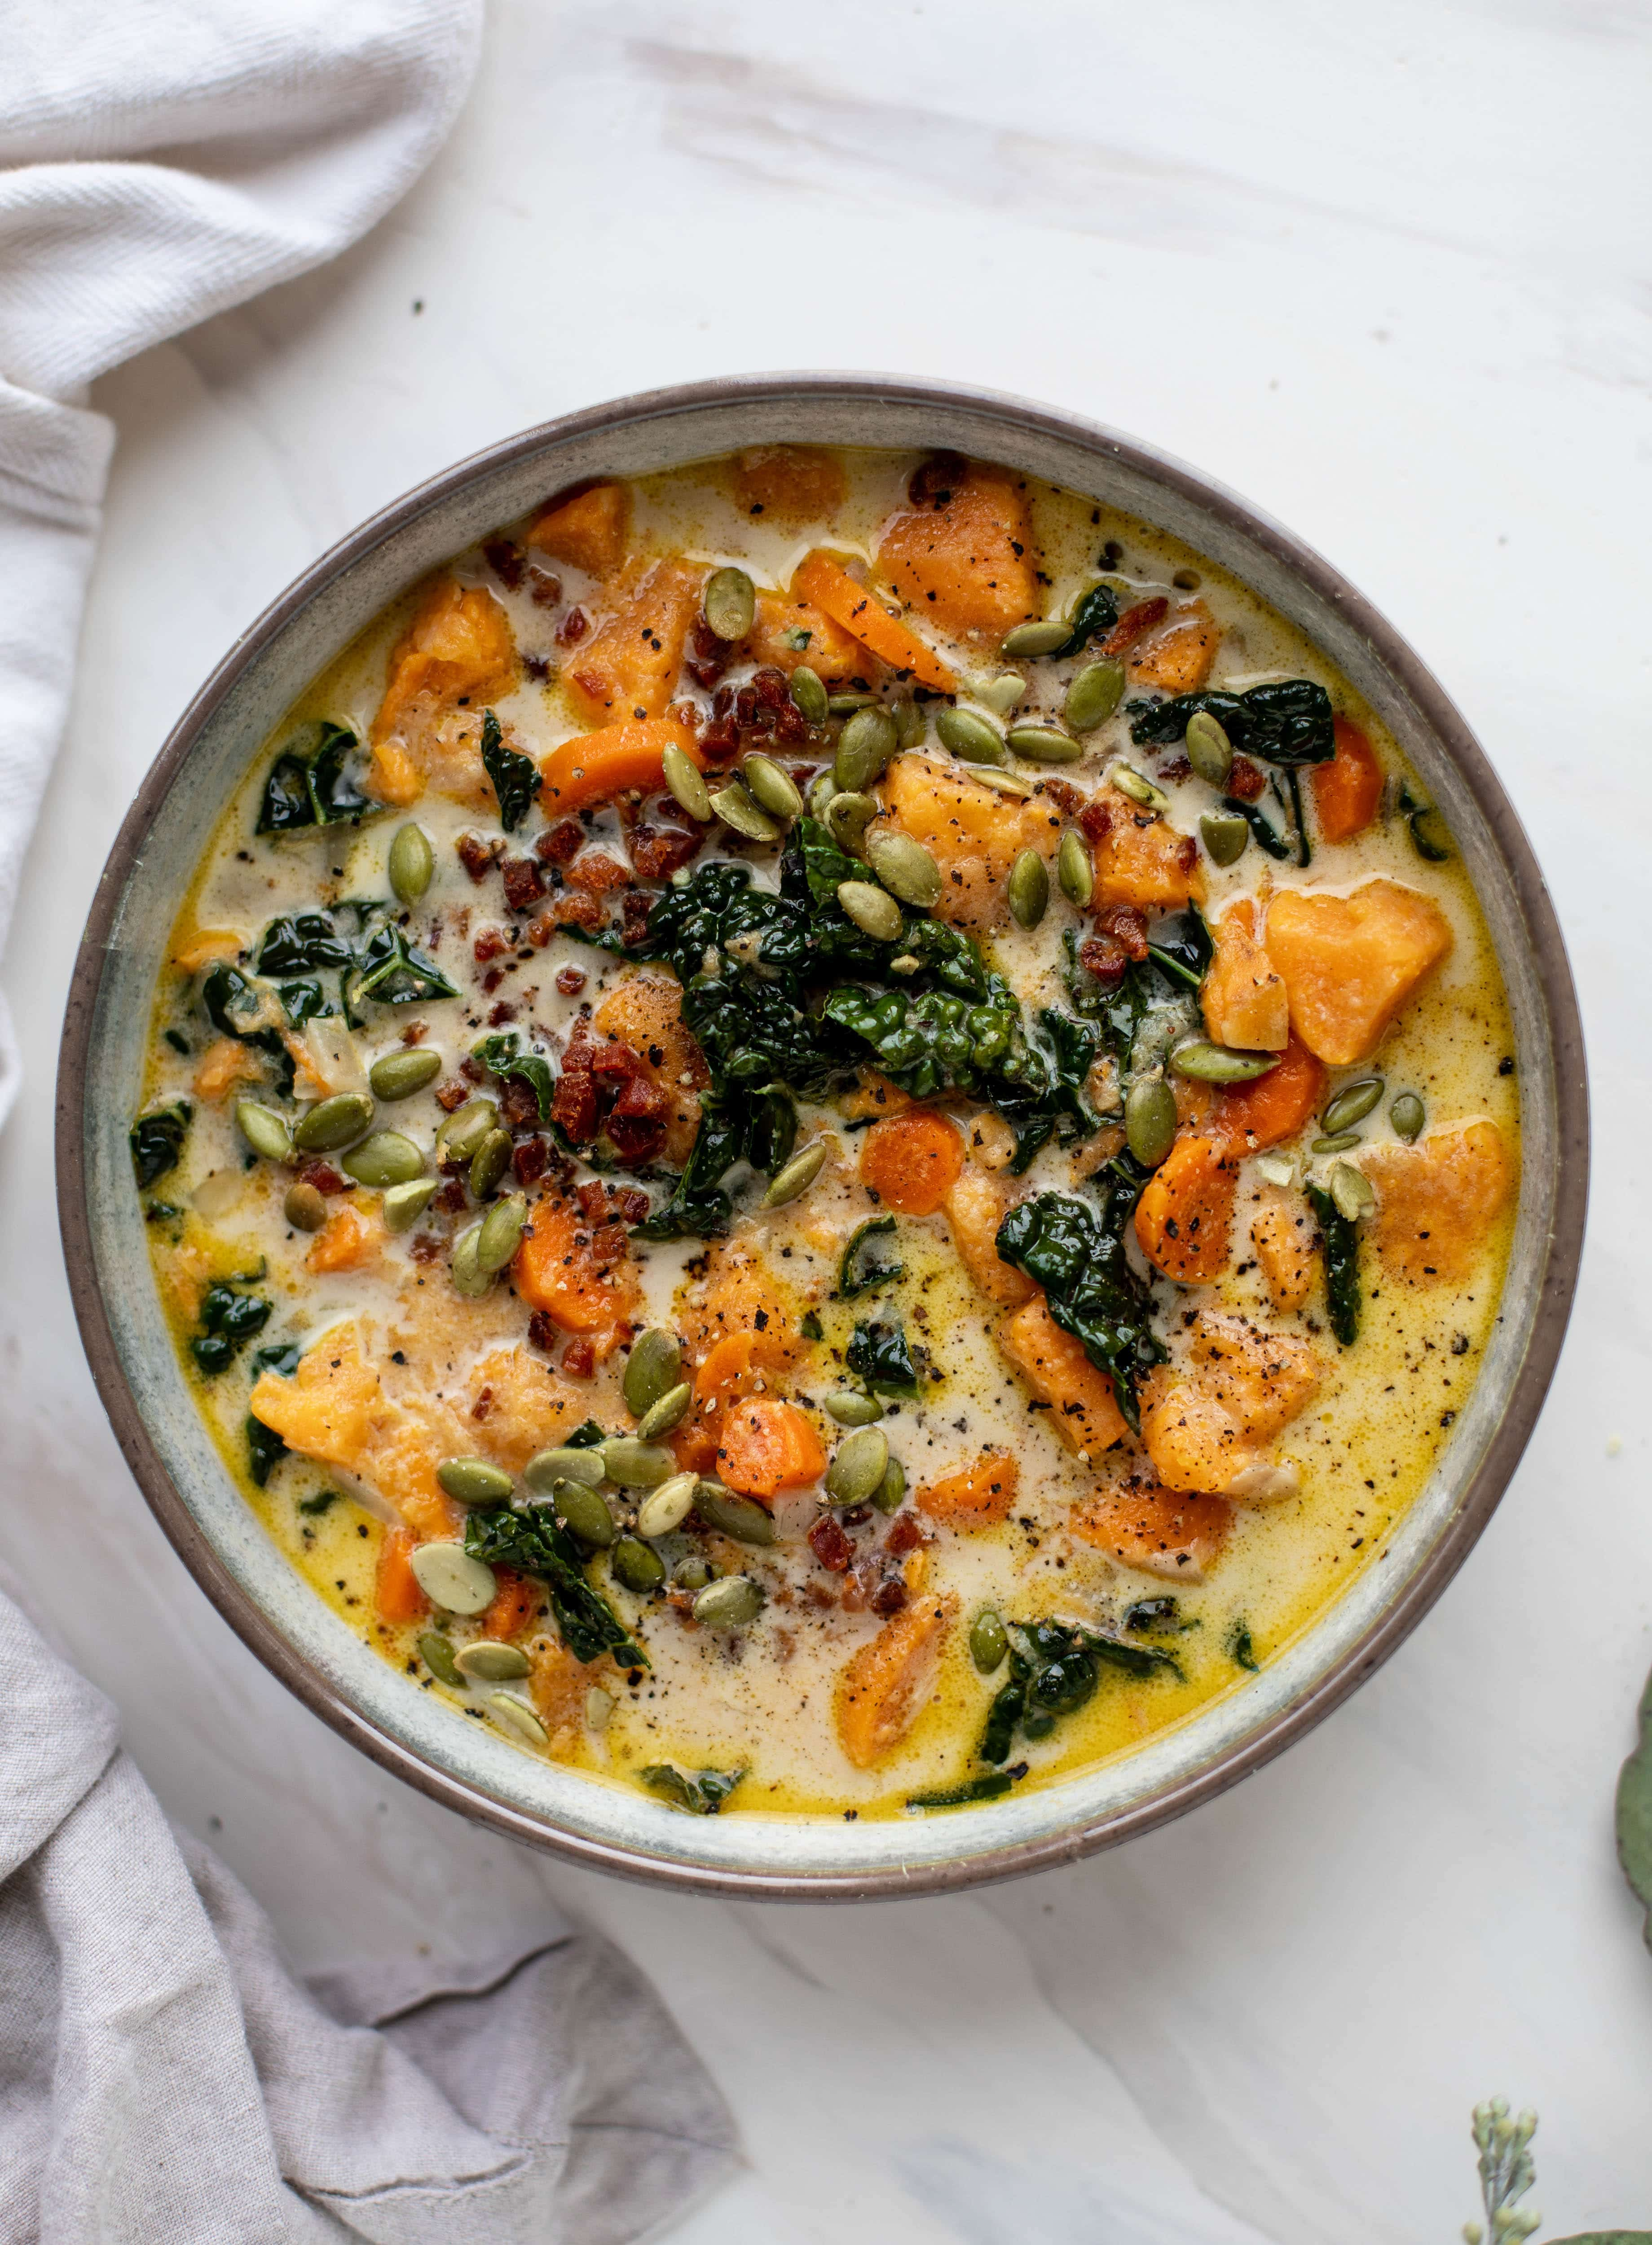 This sweet potato chowder is a hug in a bowl! Made with lots of greens and crunchy pancetta and pepitas for topping, it's a perfect weeknight meal.